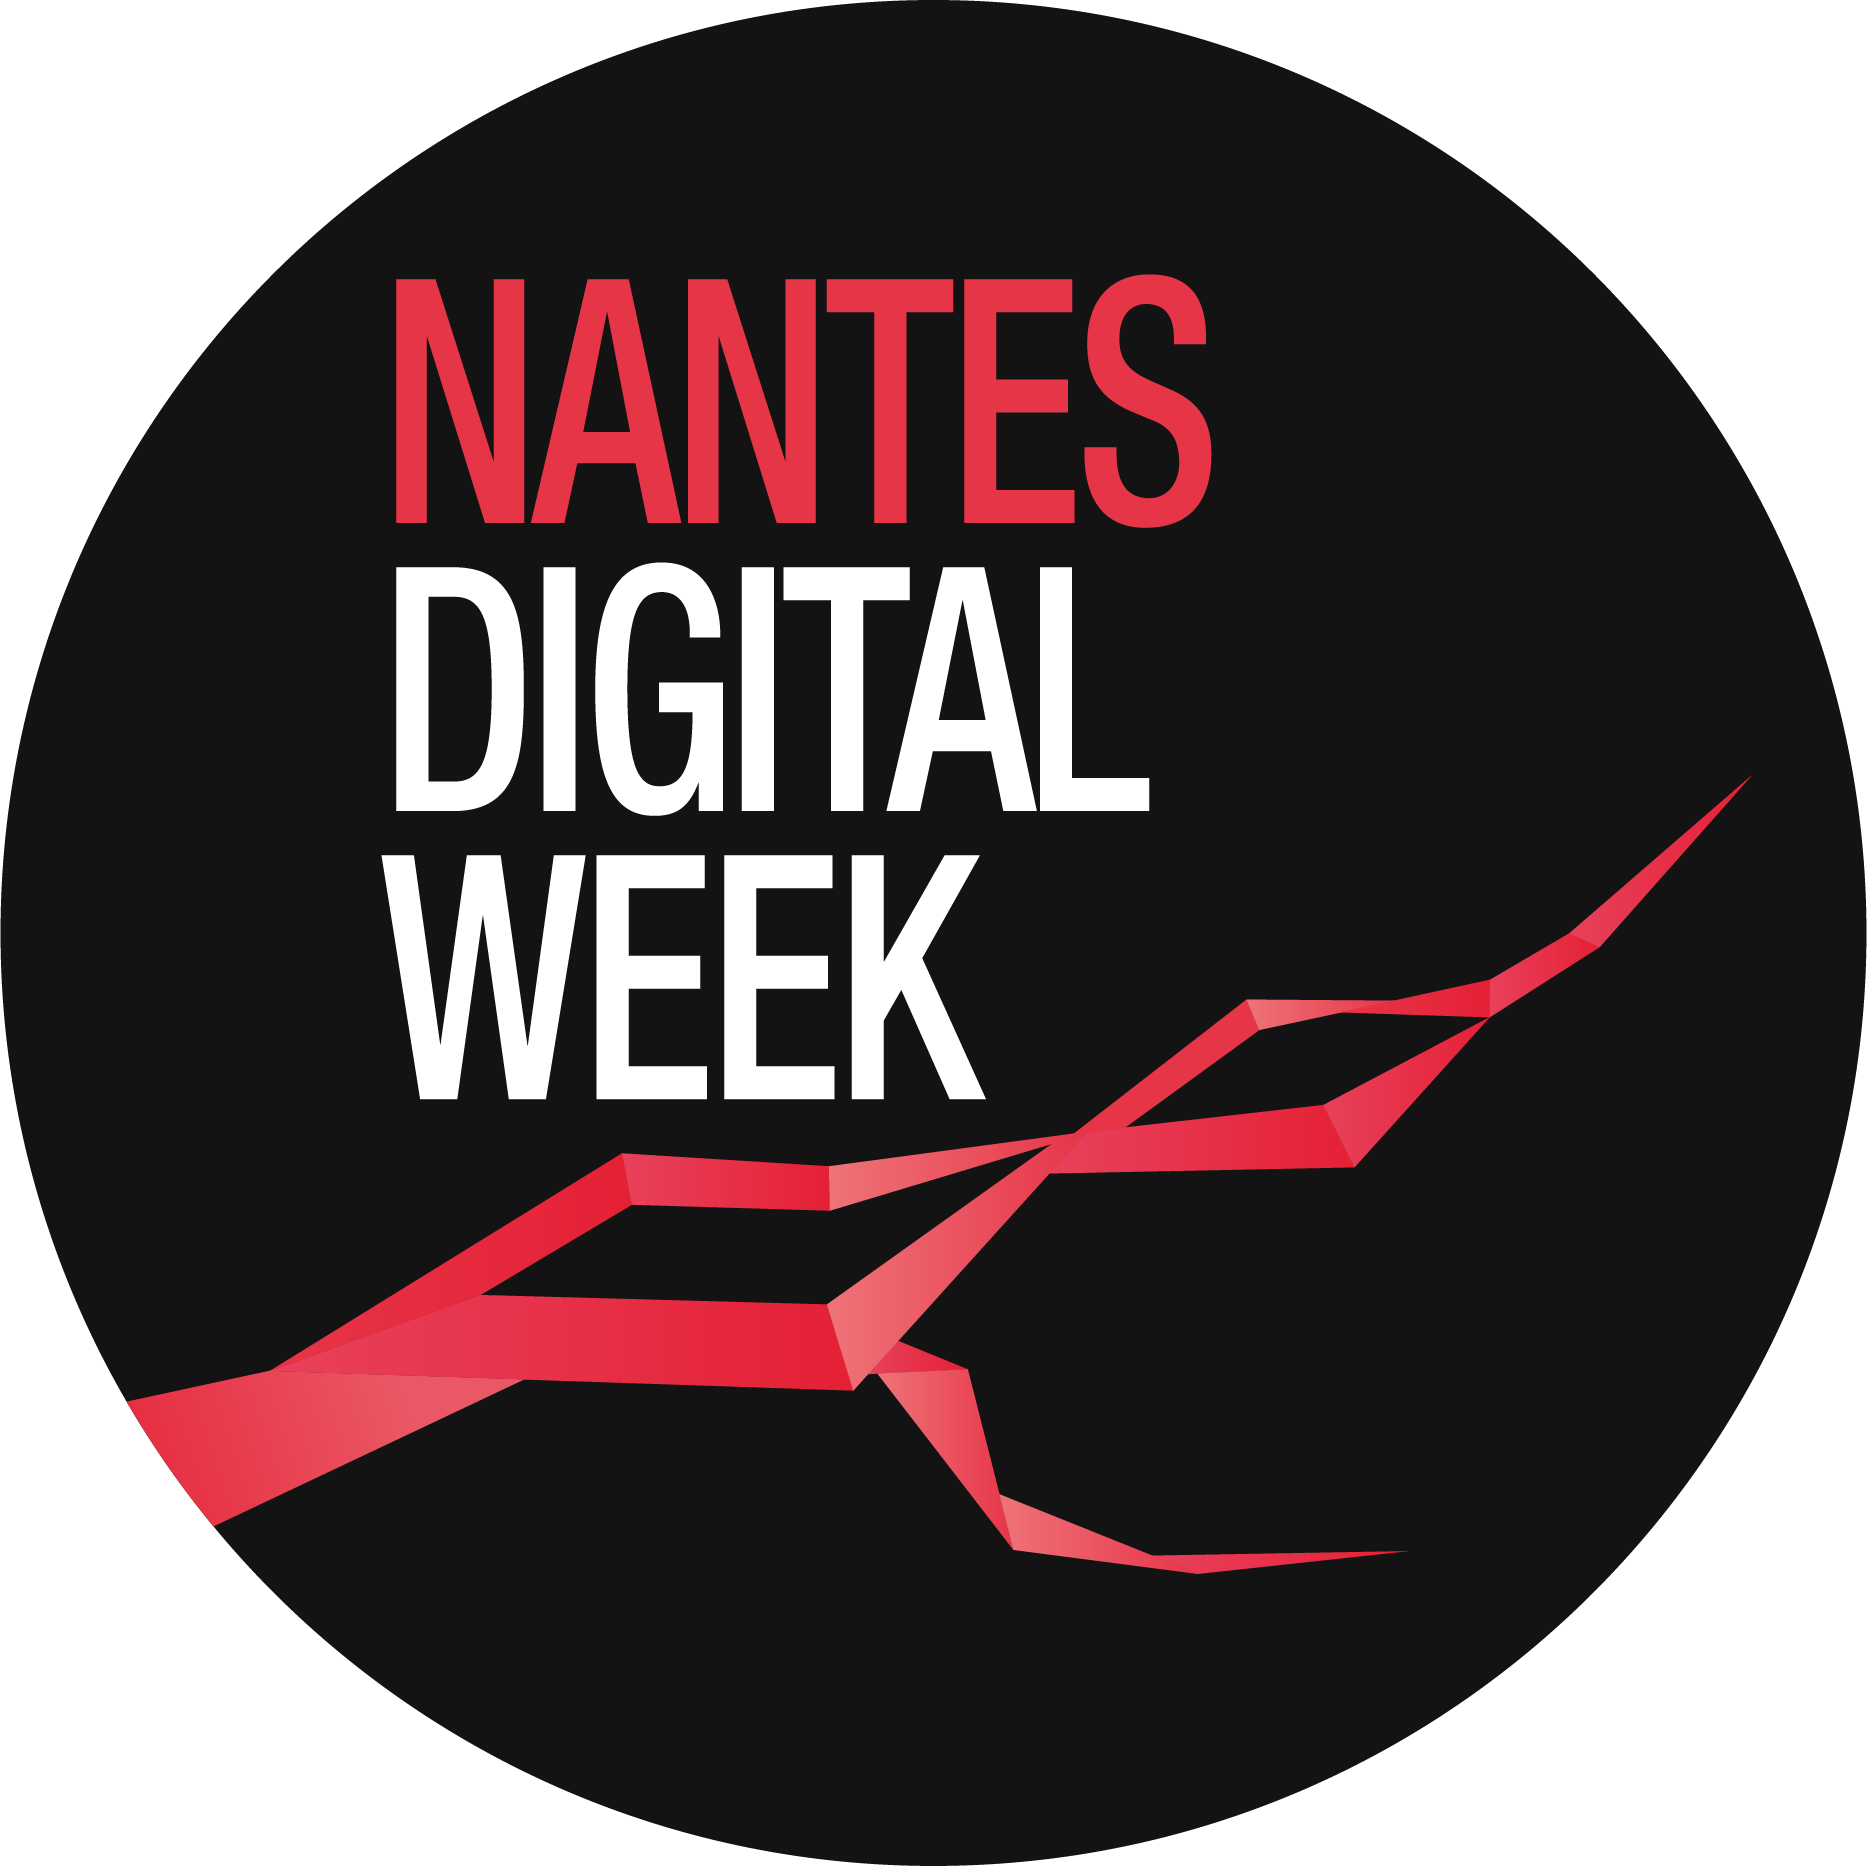 NANTES DIGITAL WEEK 2019 // E-commerce en B2C : clés de la réussite et points de vigilance